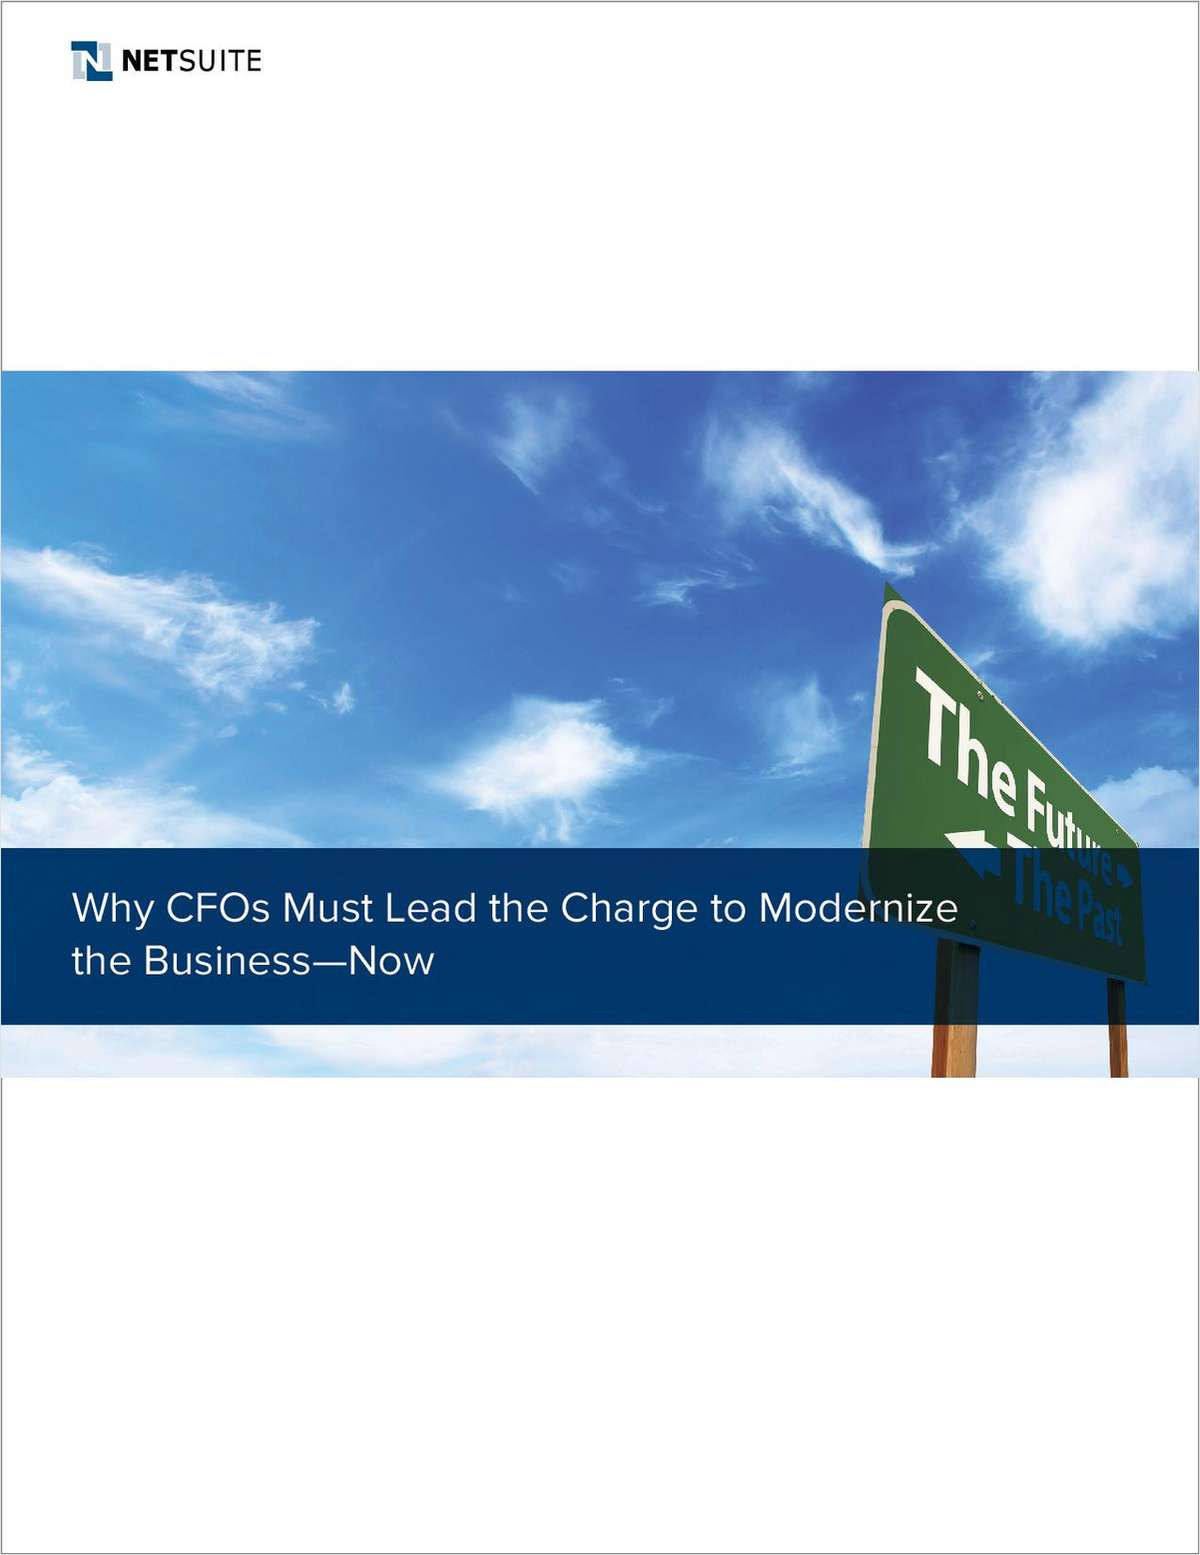 Why CFOs Must Lead the Charge to Modernize Business – Now